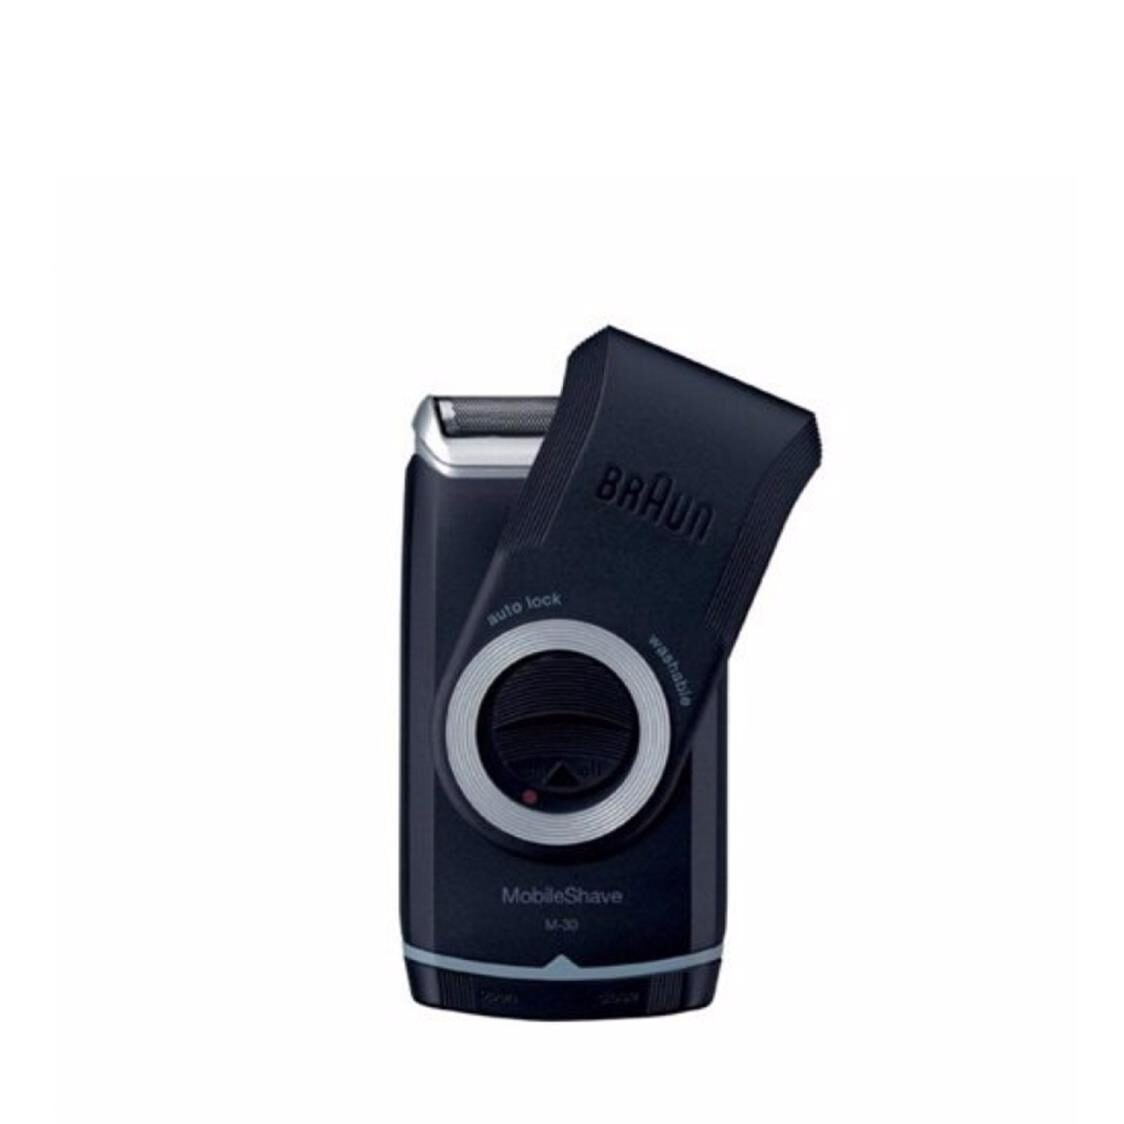 BRAUN Mobile Shave M30 Shaver Small Travel Size